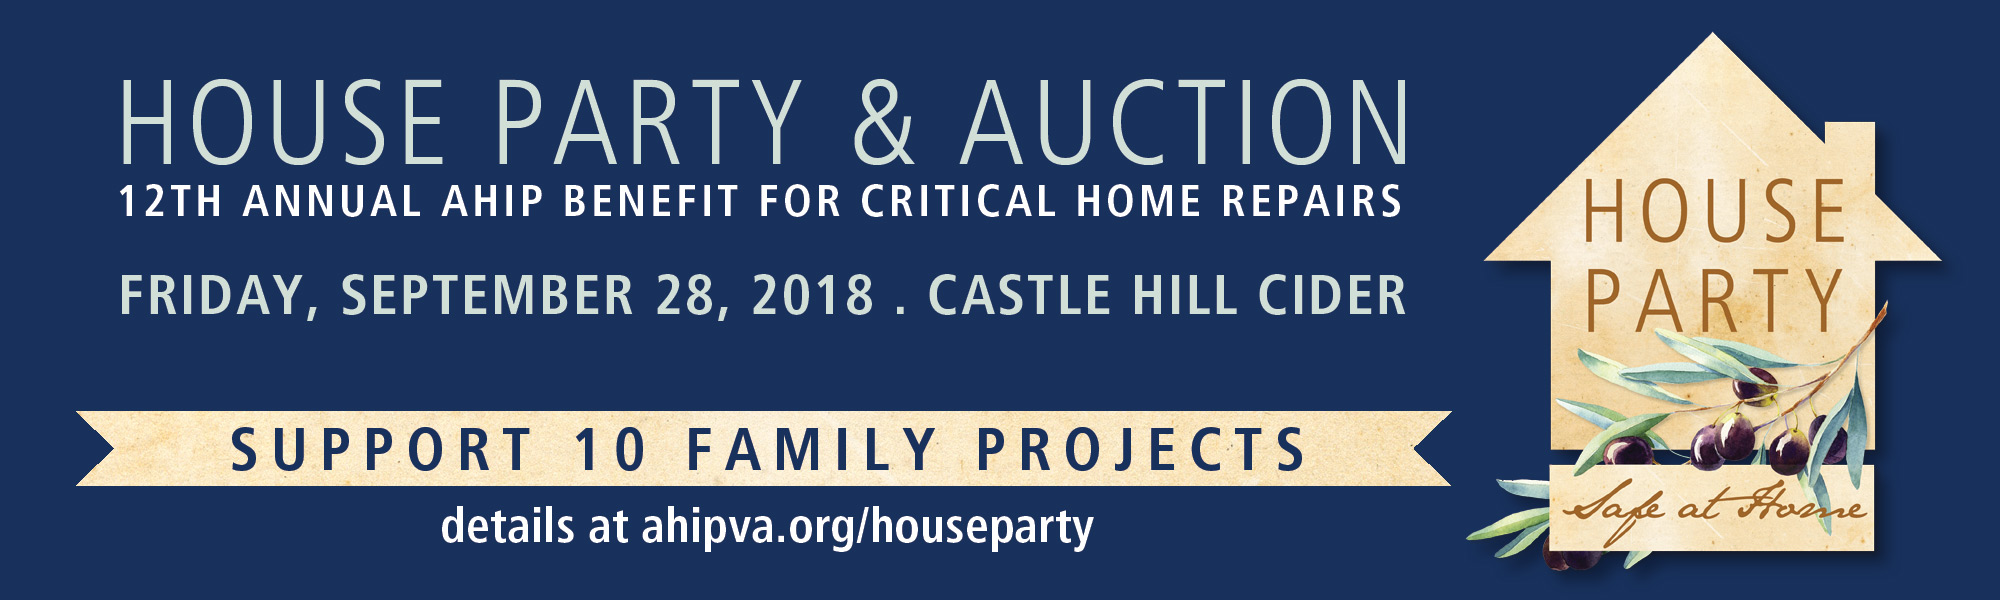 AHIP House Party Collective Giving to Help 10 Families